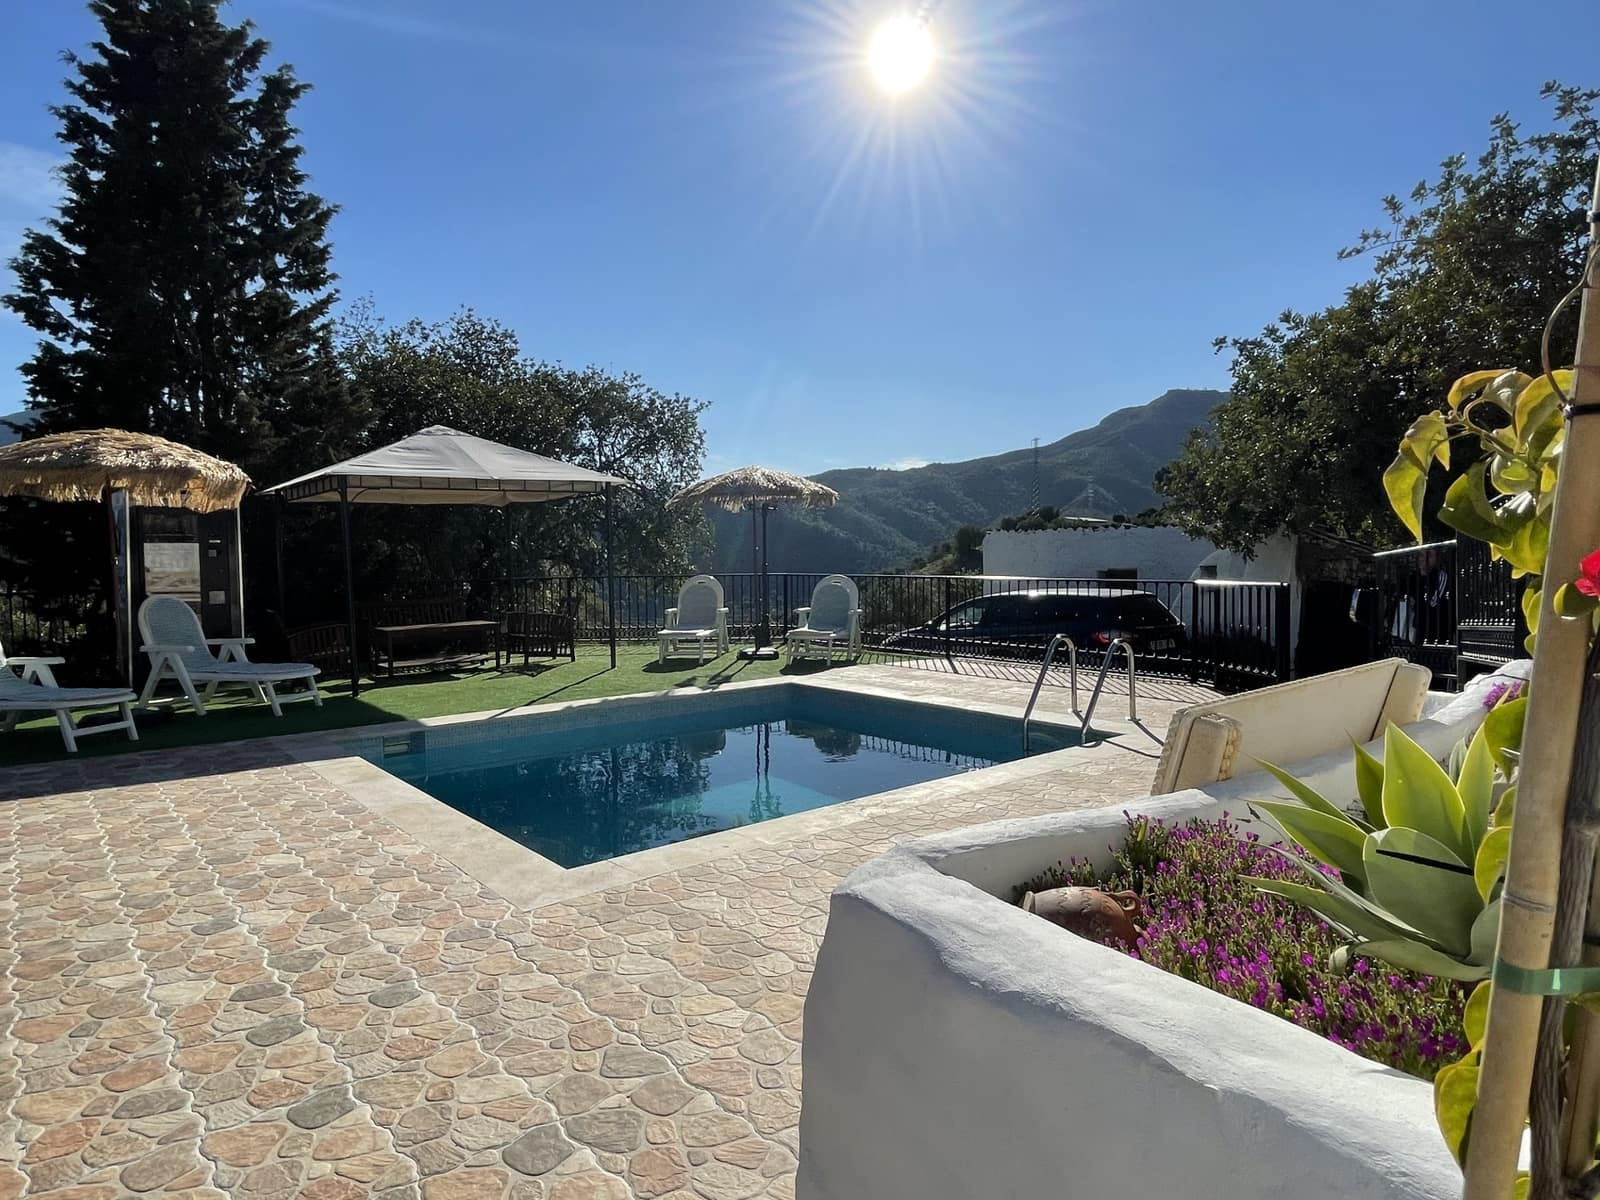 2 bedroom Finca/Country House for sale in El Chorro with pool - € 374,500 (Ref: 5981410)